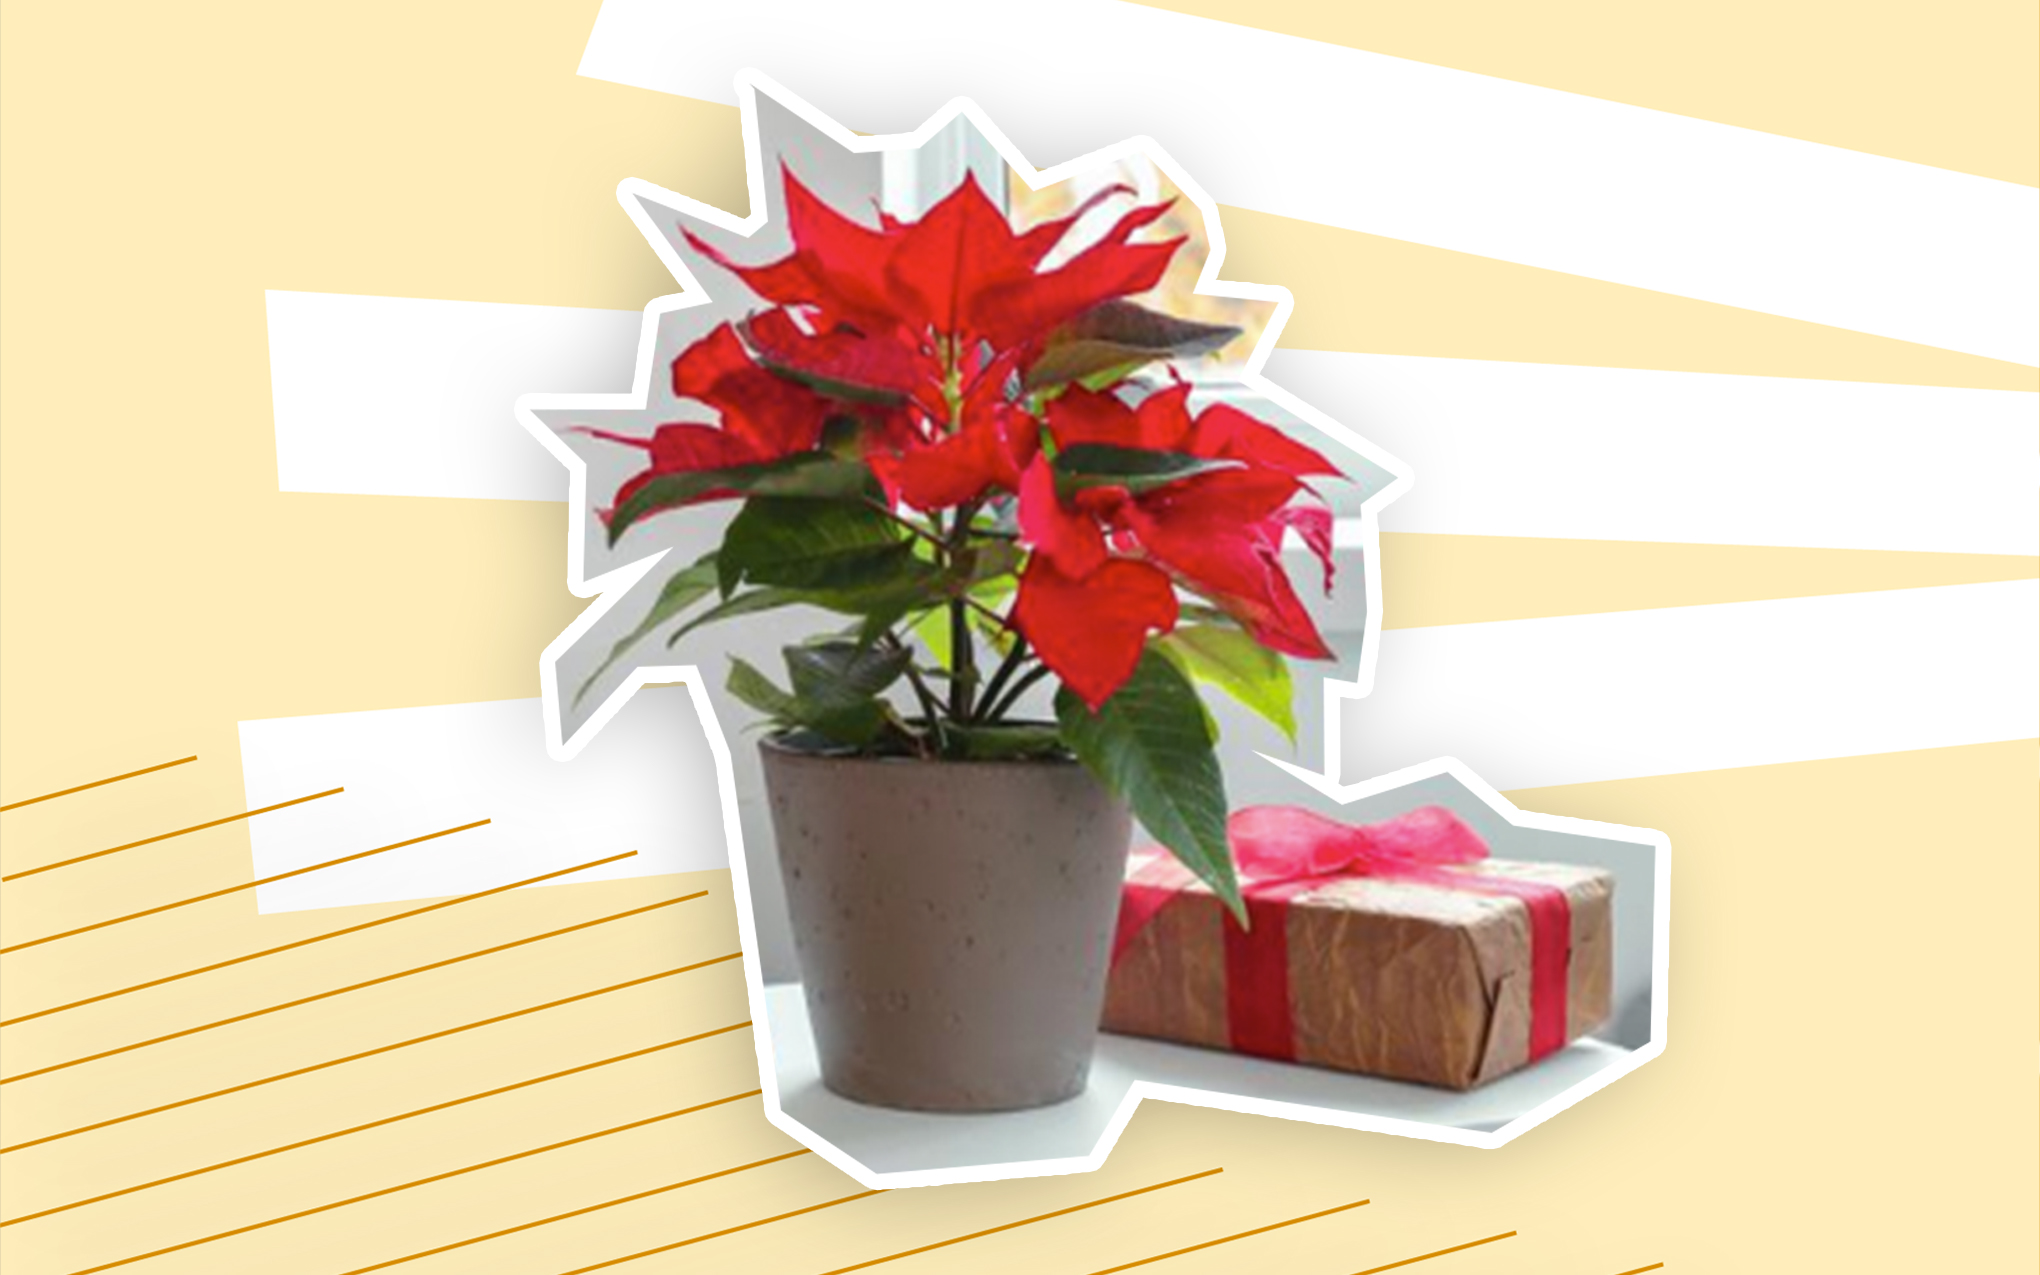 Here S Where To Buy Poinsettias Online The Red Christmas Flowers Spy